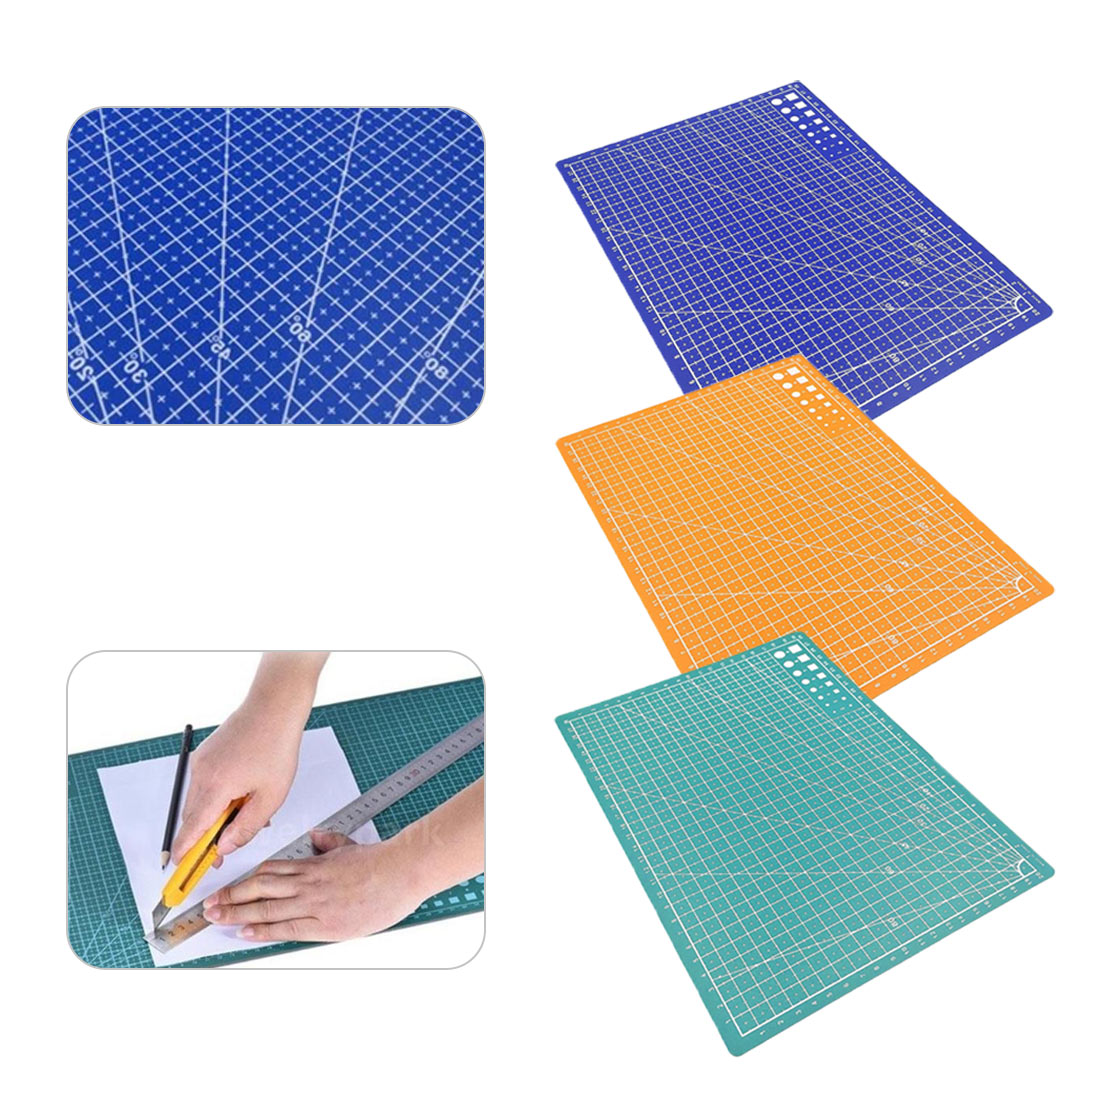 Craft Card Cloth Leather Cardboard Sewing Tool1PC A4 Grid Line Self-healing Cutting Pad  Plate Cutter